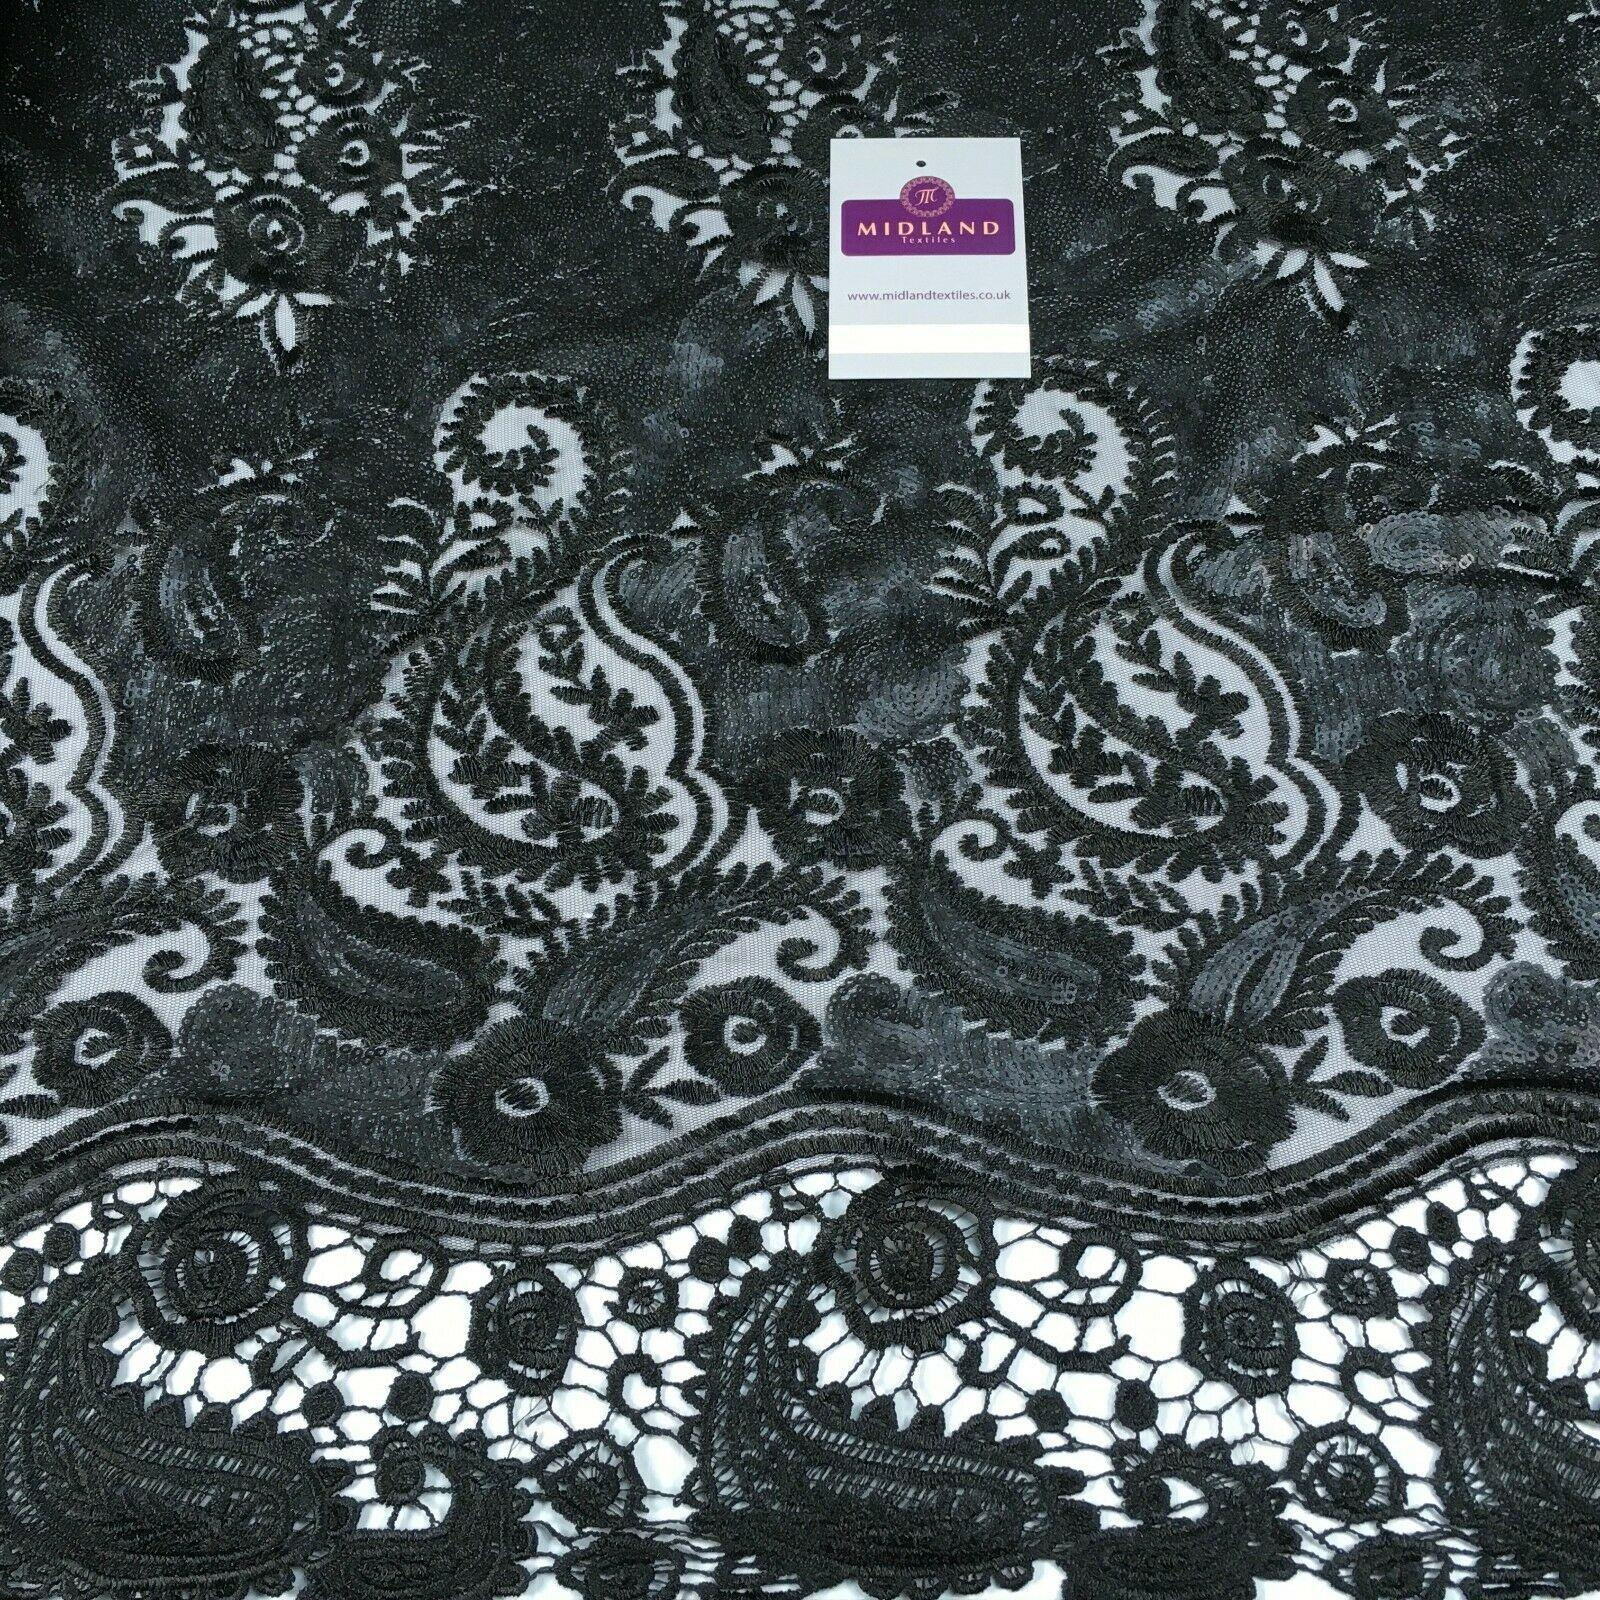 Paisley Matt Sequin with Guipure border net mesh dress fabric 150 cm M1209 Mtex